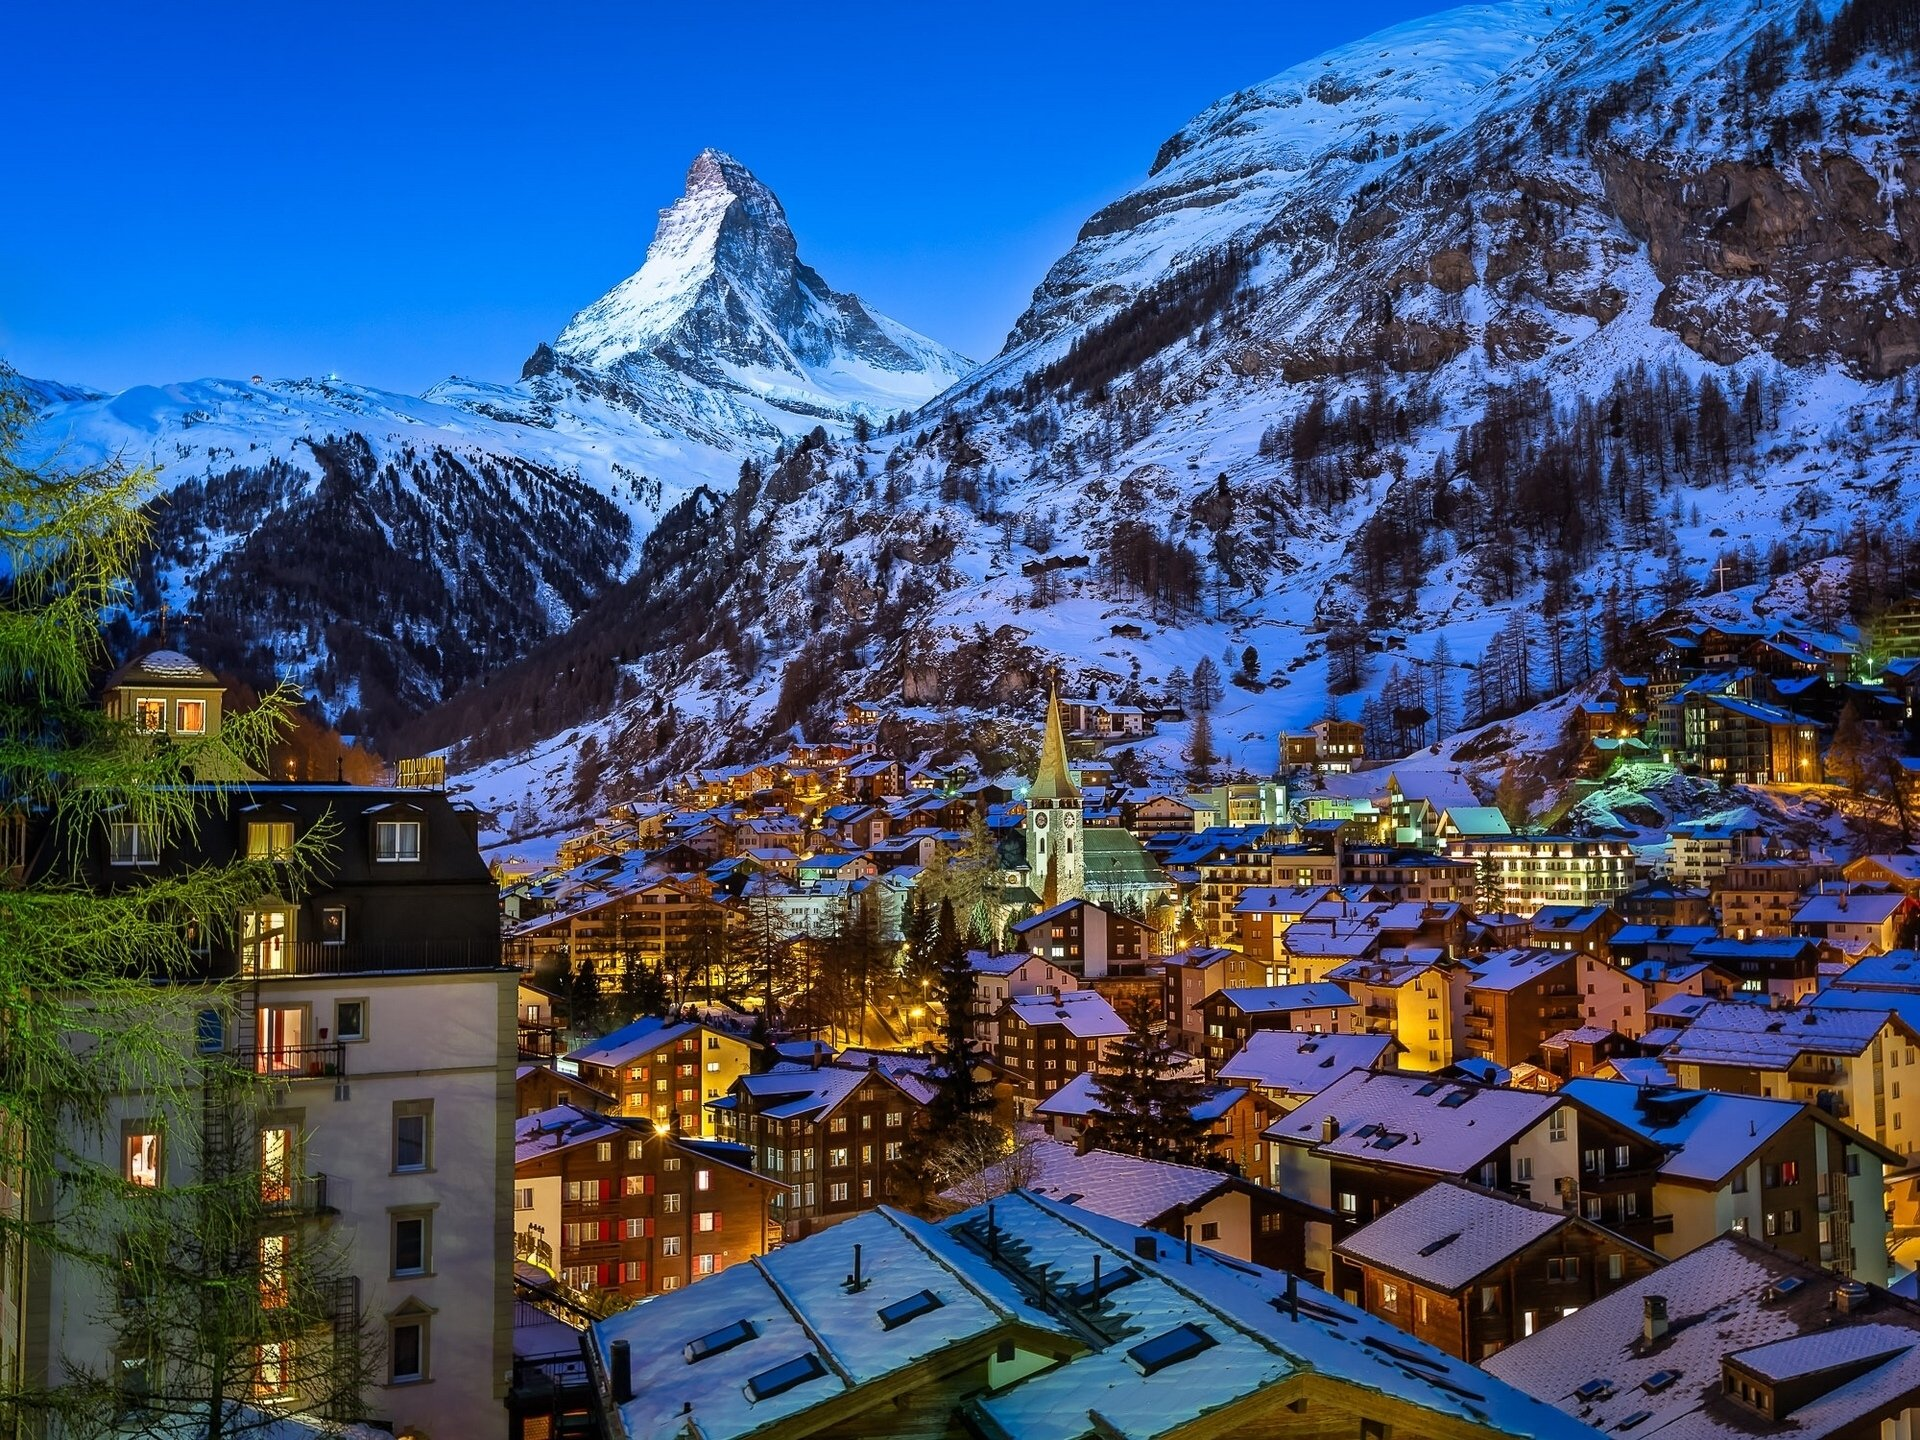 Man Made - Village  Man Made Matterhorn Switzerland Alps Winter Snow Wallpaper